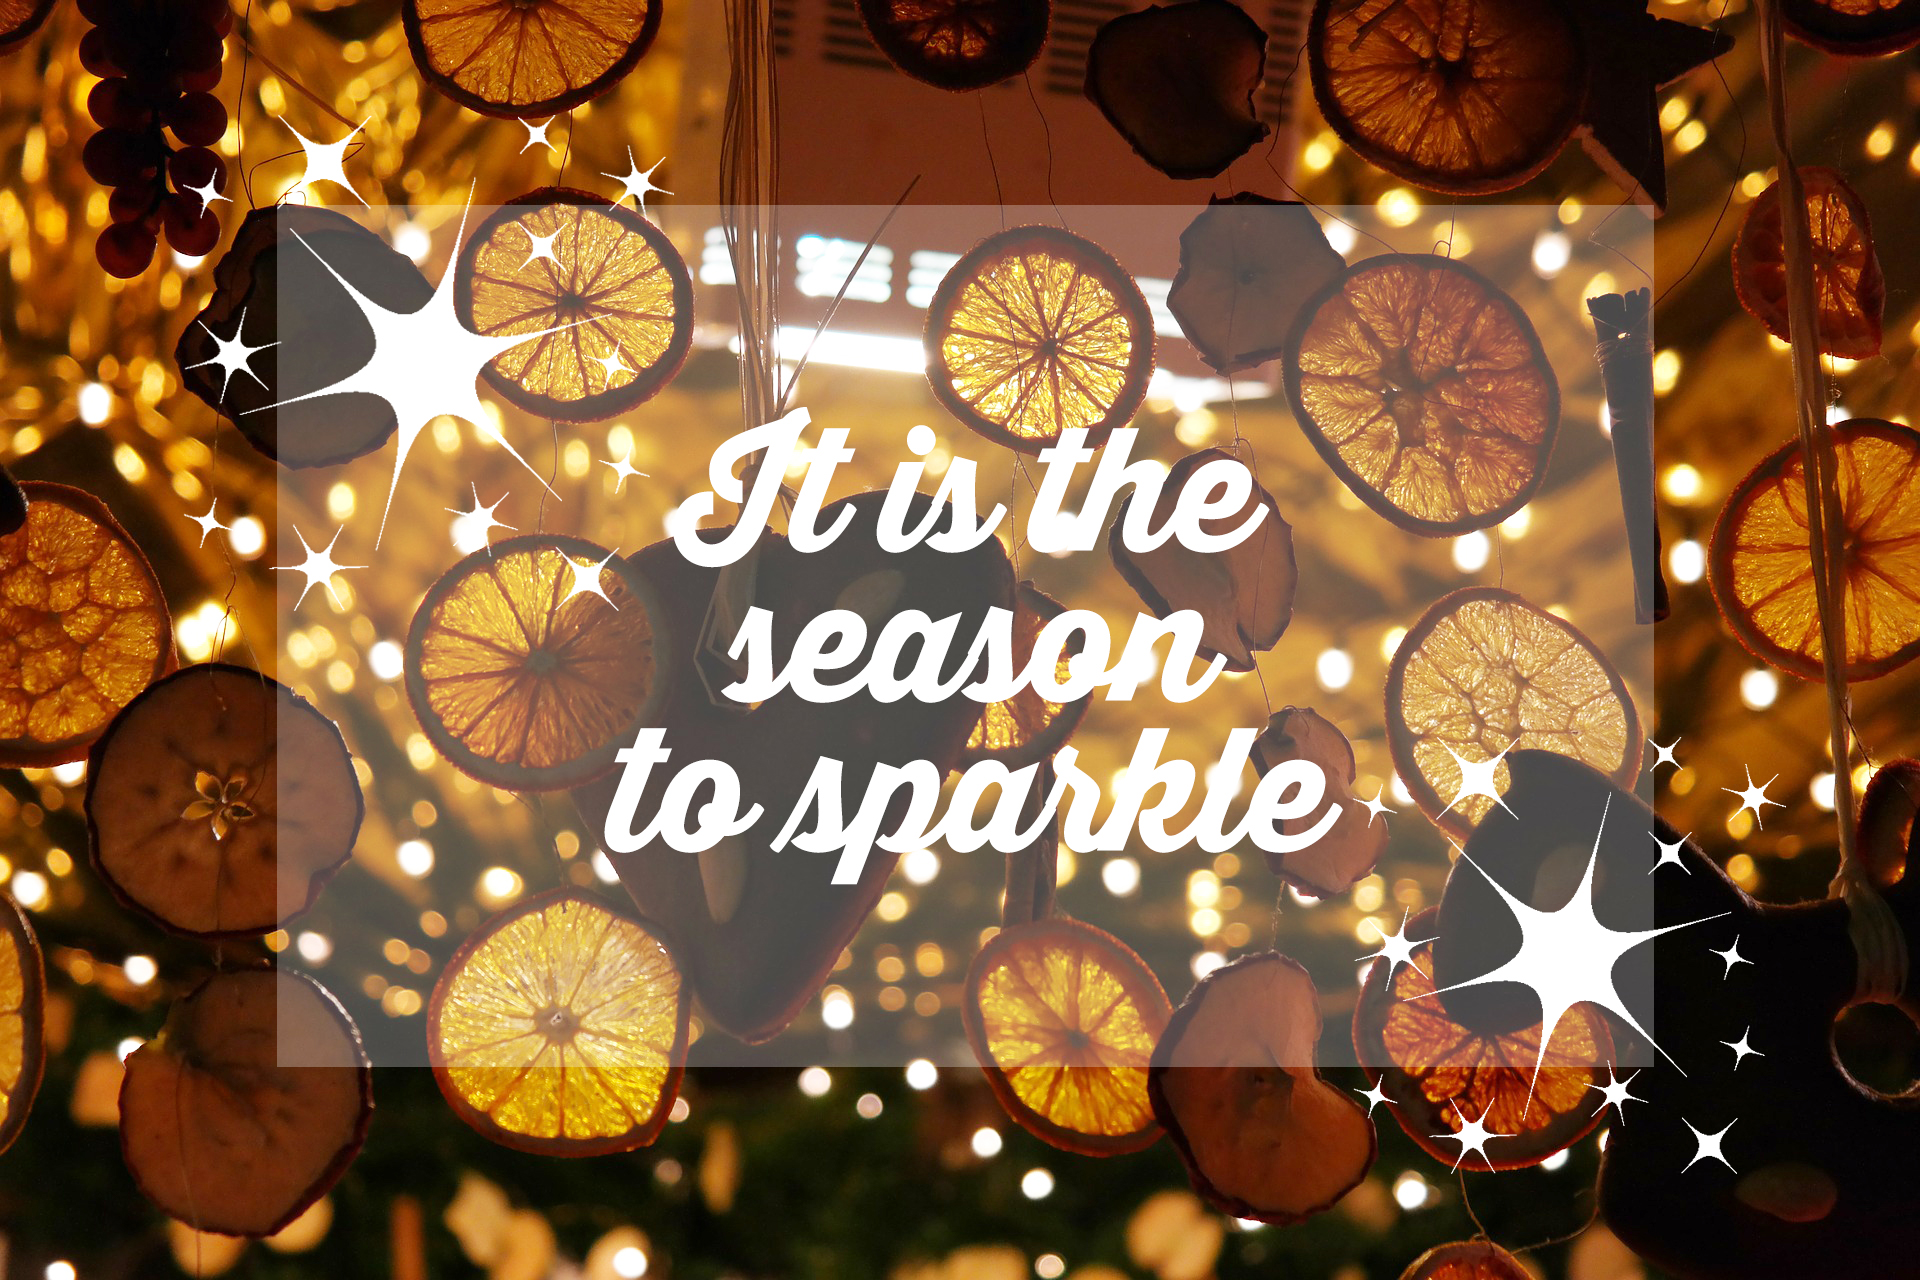 itistheseasontosparkle